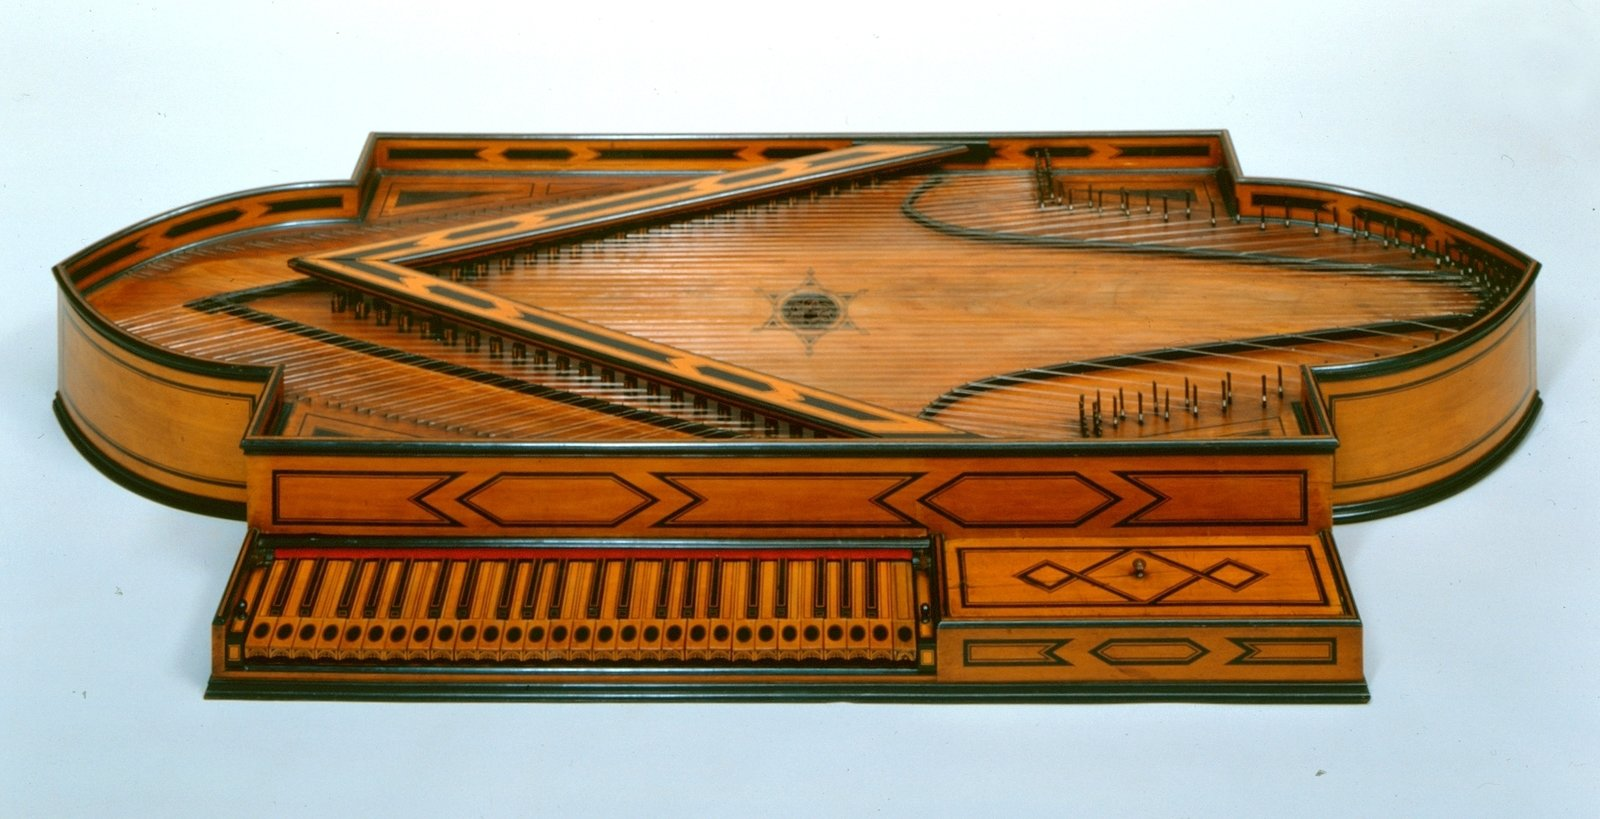 Spinett, 1693, Bartolomeo Cristofori, [The unique instrument is a fantastic example of the creative powers of Bartolomeo Cristofori and was made a few years before his invention of the pianoforte. It blends ingenious design and technical solutions with virtually unsurpassable craftsmanship. With this instrument, he managed to combine the benefits of the harpsichord (use of a double course, long bass scale) with the more intimate shape of a spinet in a visually pleasing form. Cristofori only built two known models of this type, a harpsichord in 1690 and the instrument described here in 1693. Both instruments were made for Ferdinand de Medici, the eldest son of the Grand Duke of Tuscany, Cosimo III. de Medici.], Museum für Musikinstrumente der Universität Leipzig via Europeana, CC BY-NC-SA